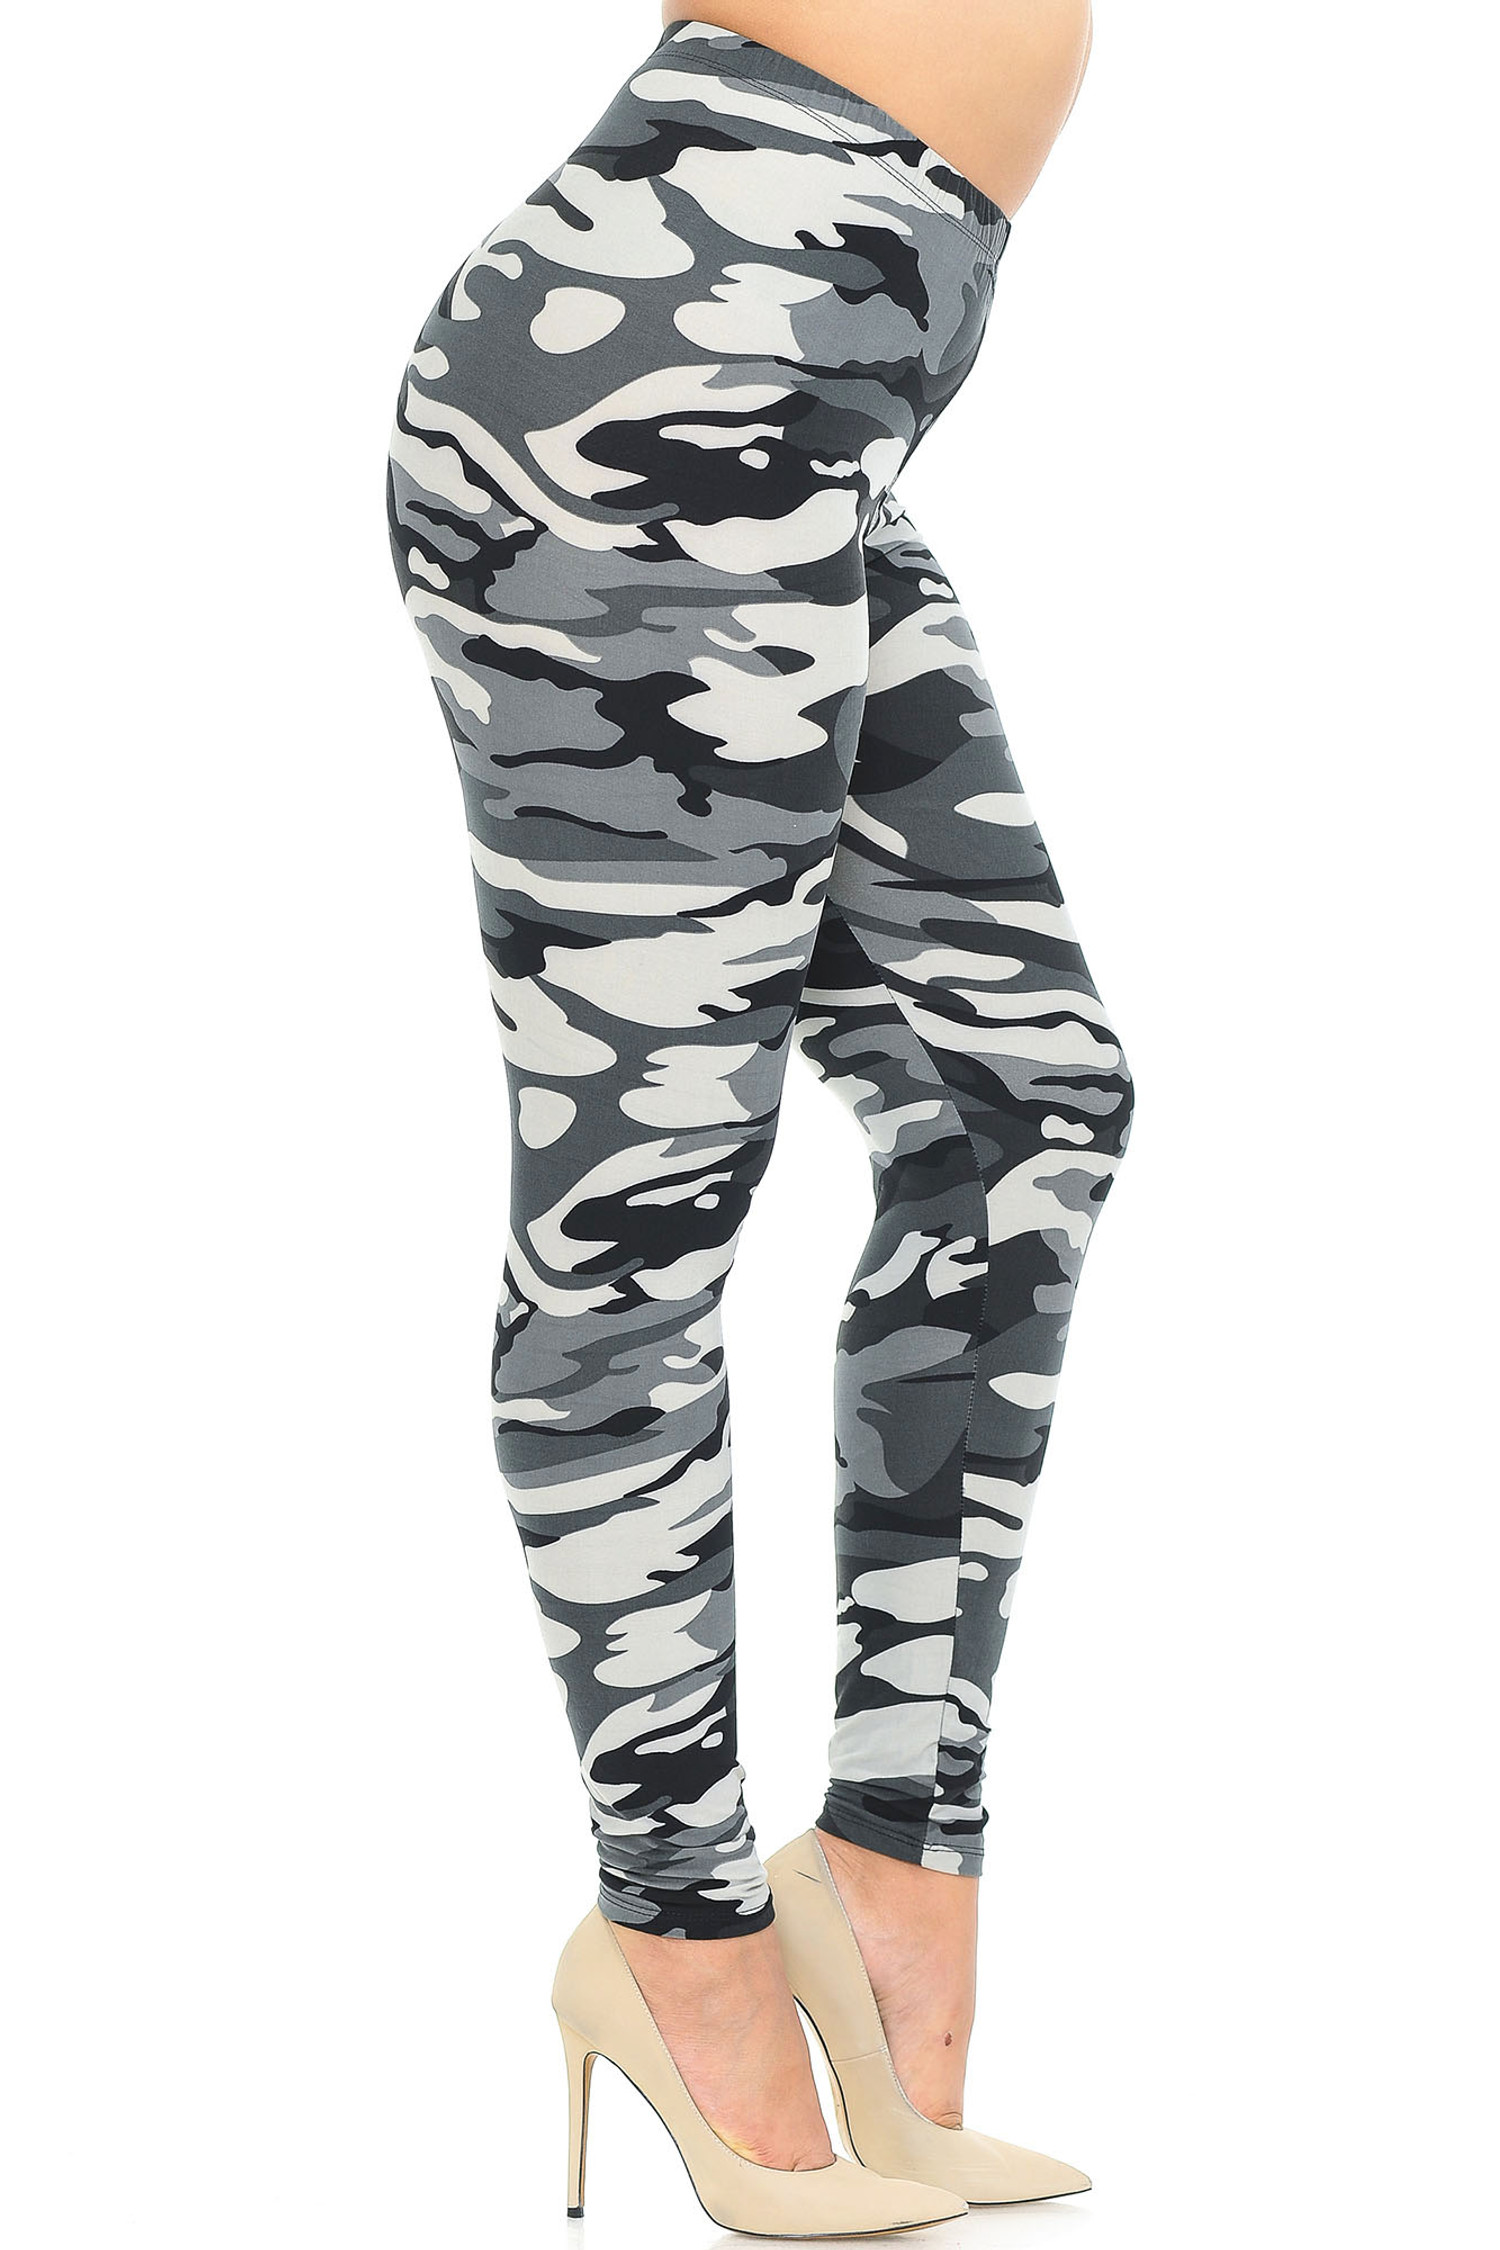 Brushed  Charcoal Camouflage Plus Size Leggings